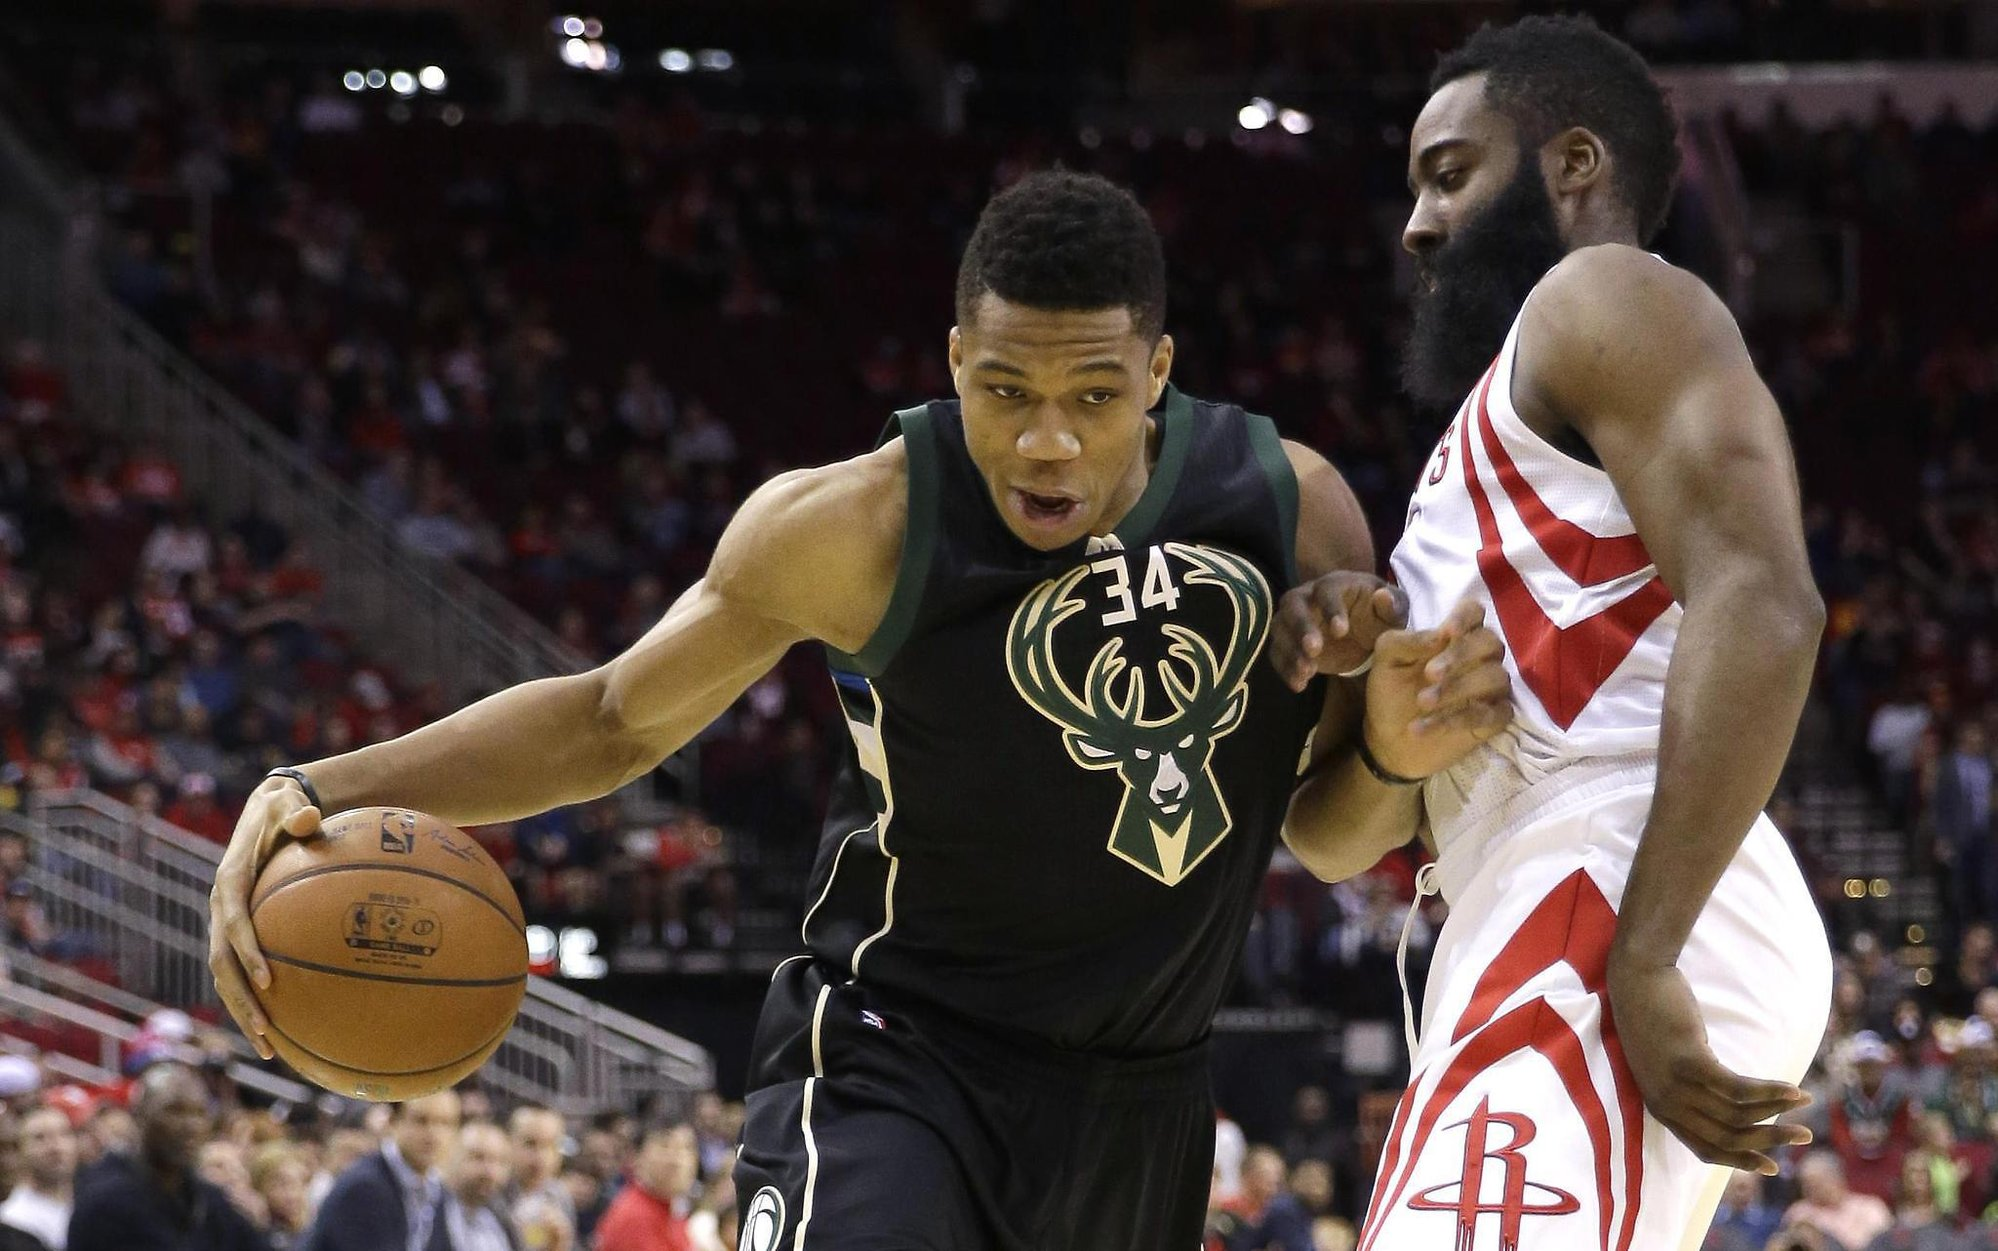 efdc449c053 Giannis Antetokounmpo On James Harden   He Is The Best Player In The League